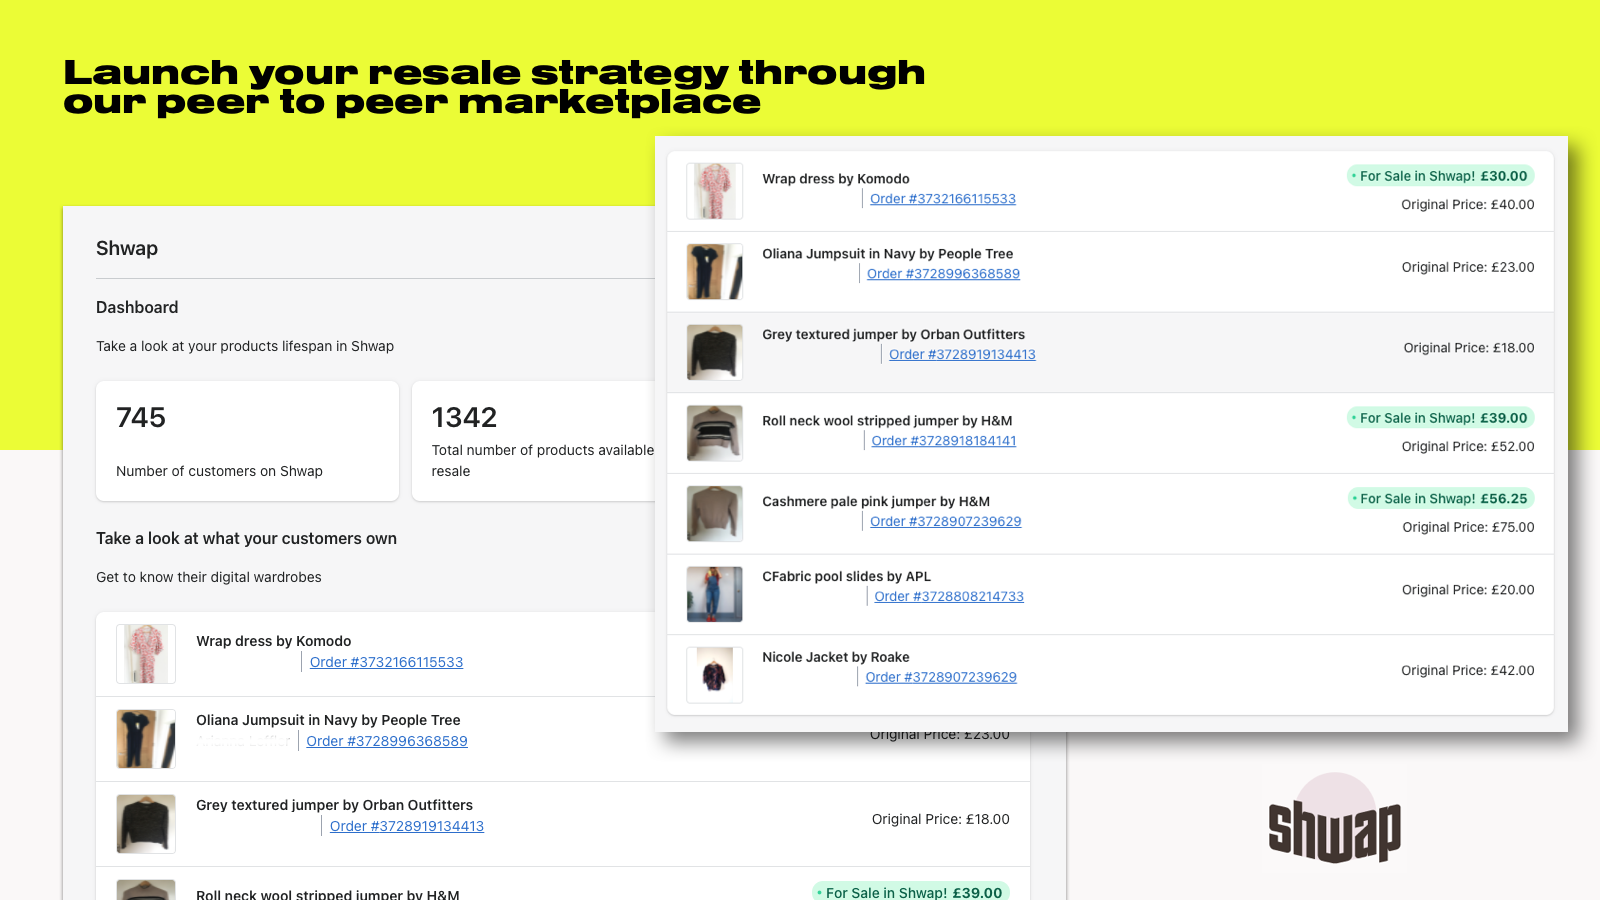 Launch your resale strategy through our peer to peer marketplace